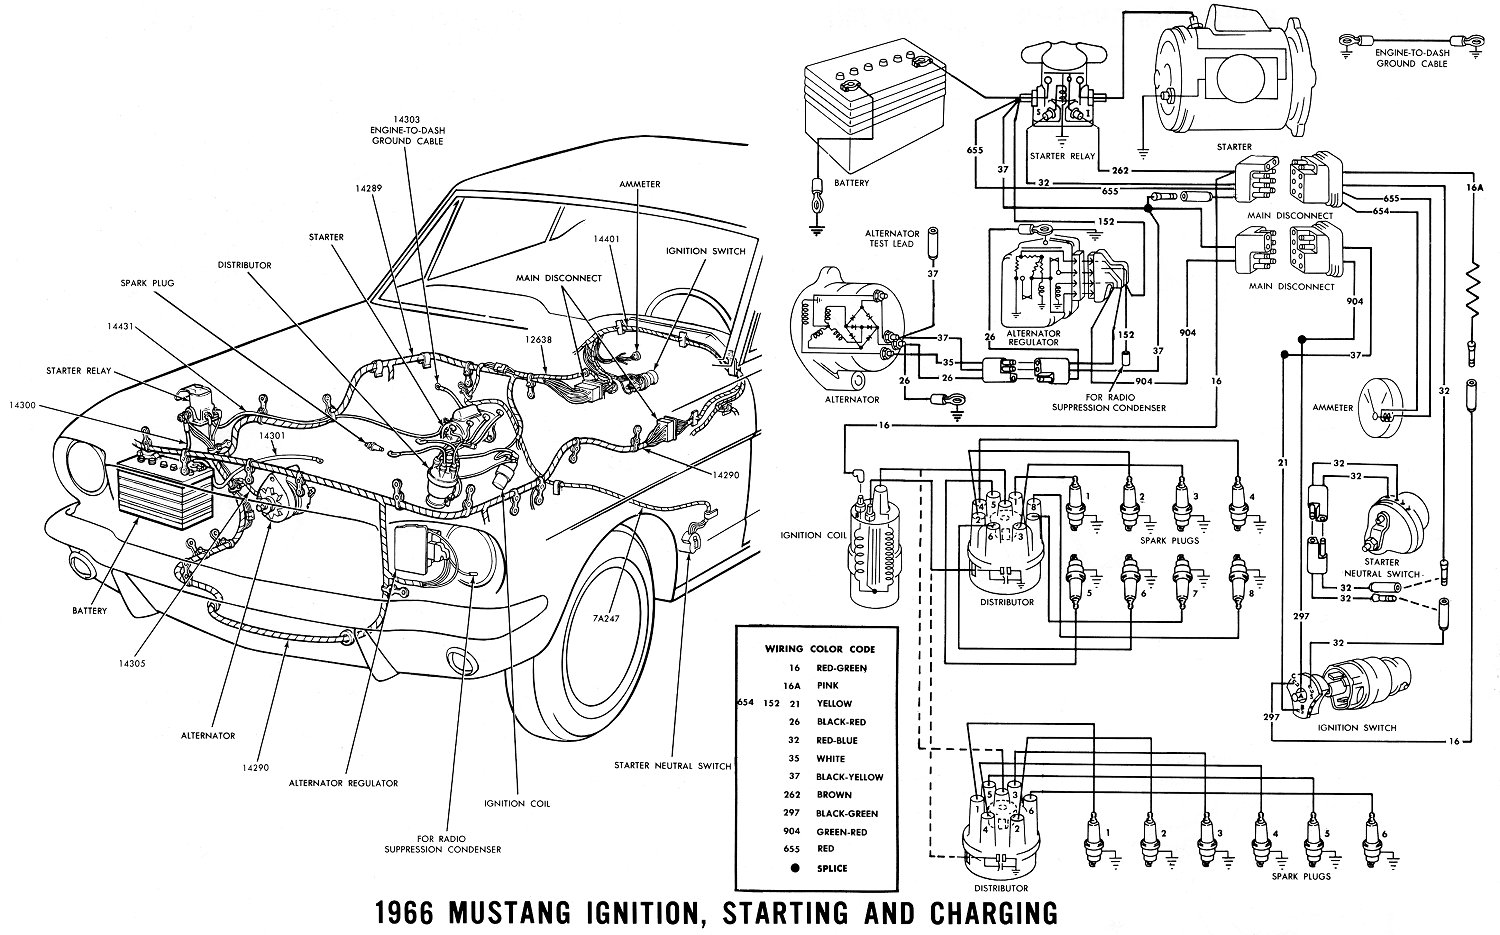 1966 Cj5 Wiring Harness Trusted Diagram Ignition 66 Mustang Schematic Opinions About U2022